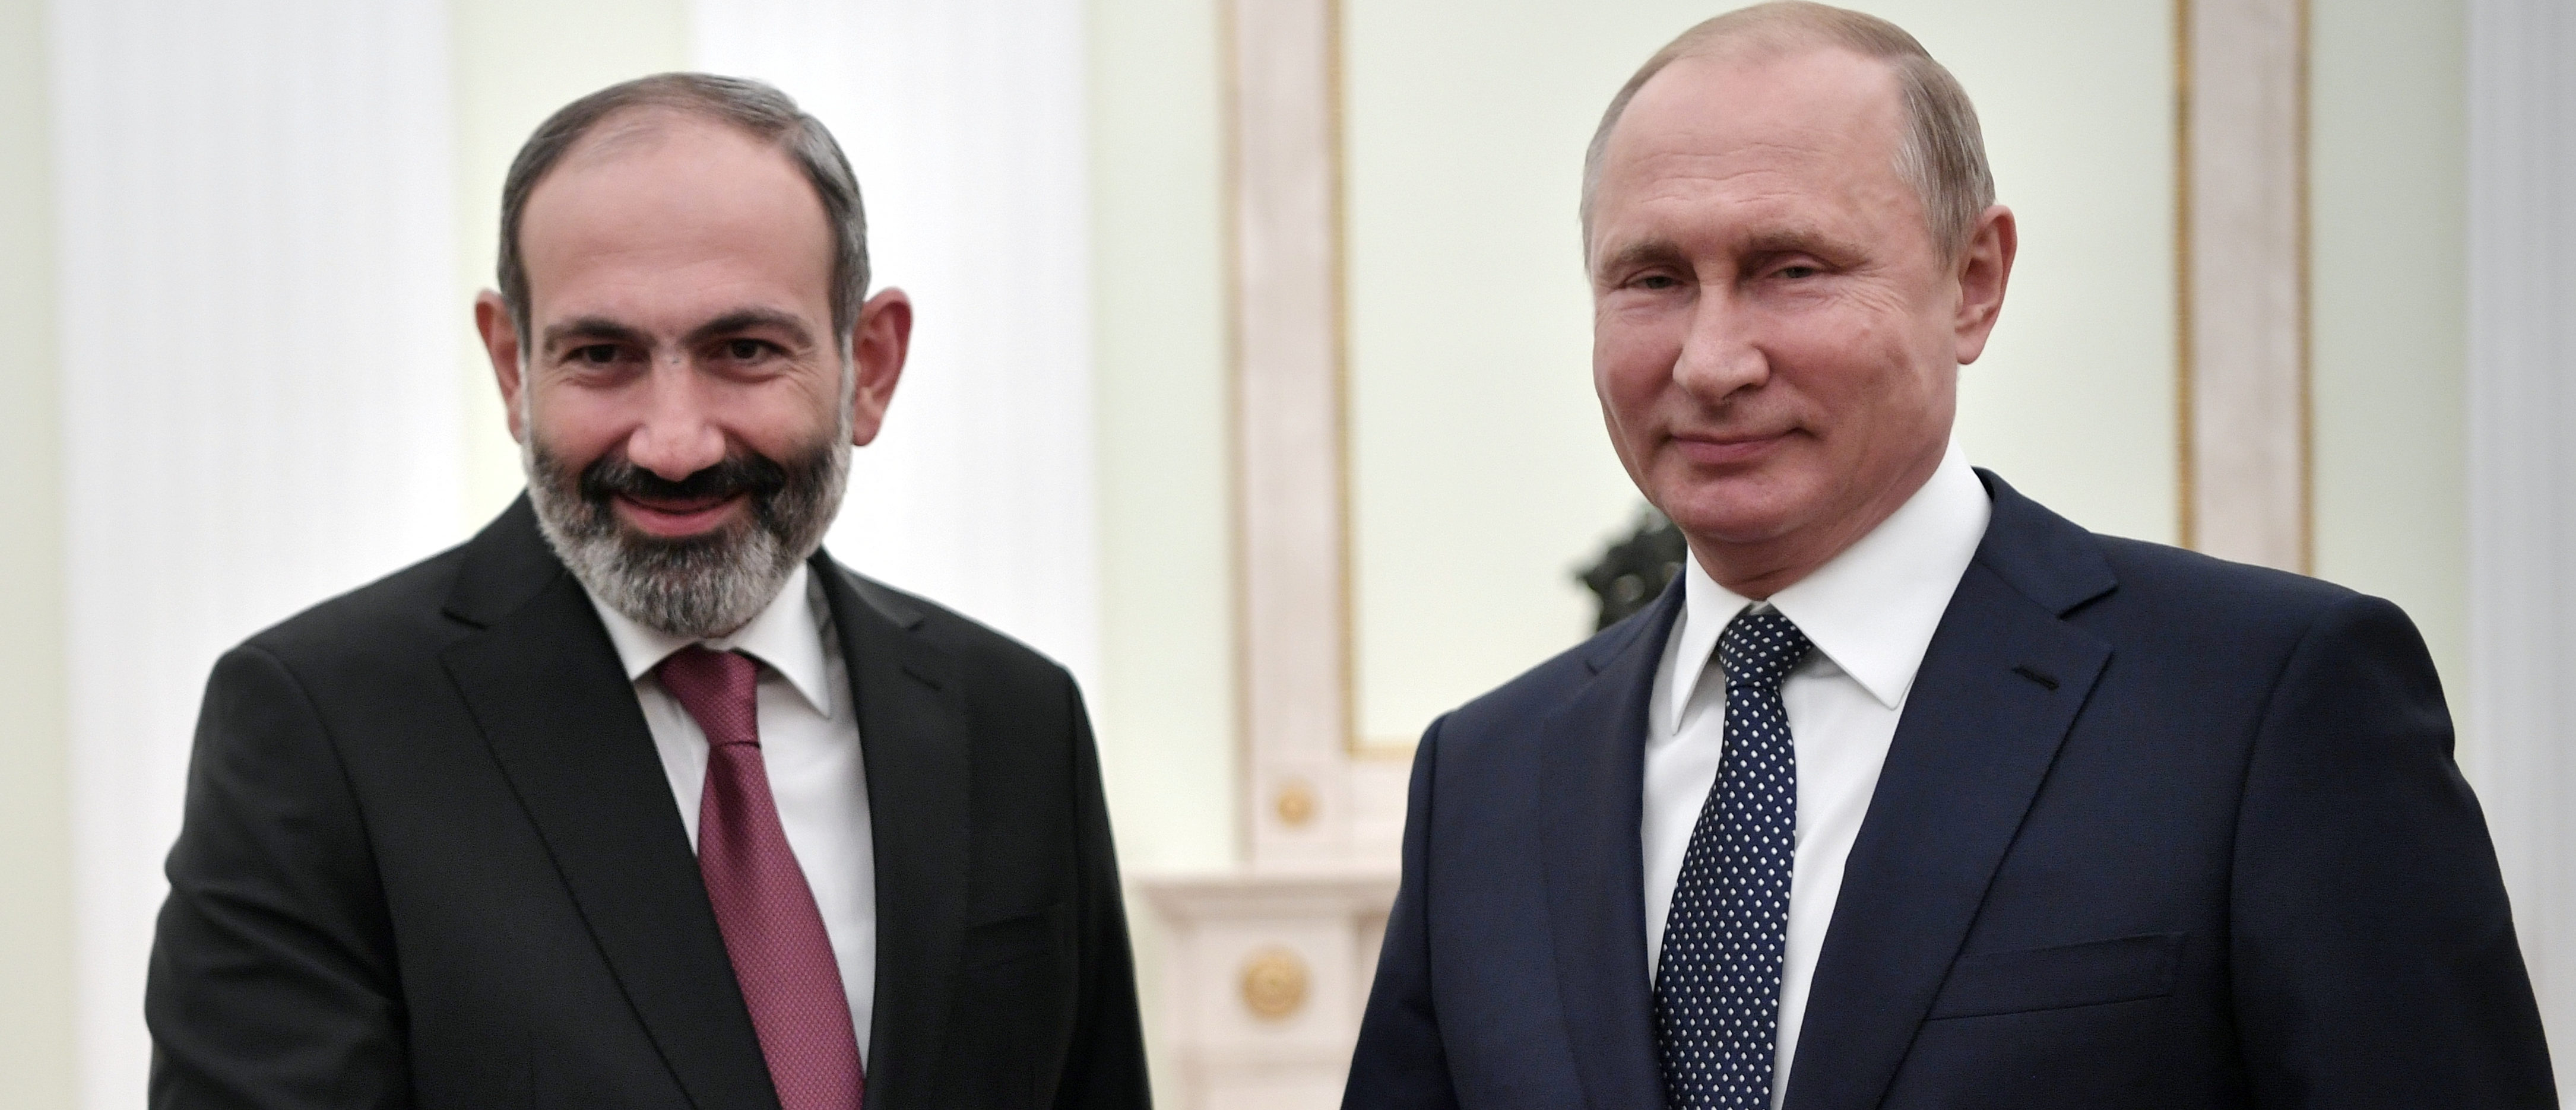 Russian President Vladimir Putin (R) meets with Armenian Prime Minister Nikol Pashinyan at the Kremlin in Moscow, Russia June 13, 2018. Sputnik/Alexei Nikolsky/Kremlin via REUTERS ATTENTION EDITORS - THIS IMAGE WAS PROVIDED BY A THIRD PARTY. - RC1710C03C10